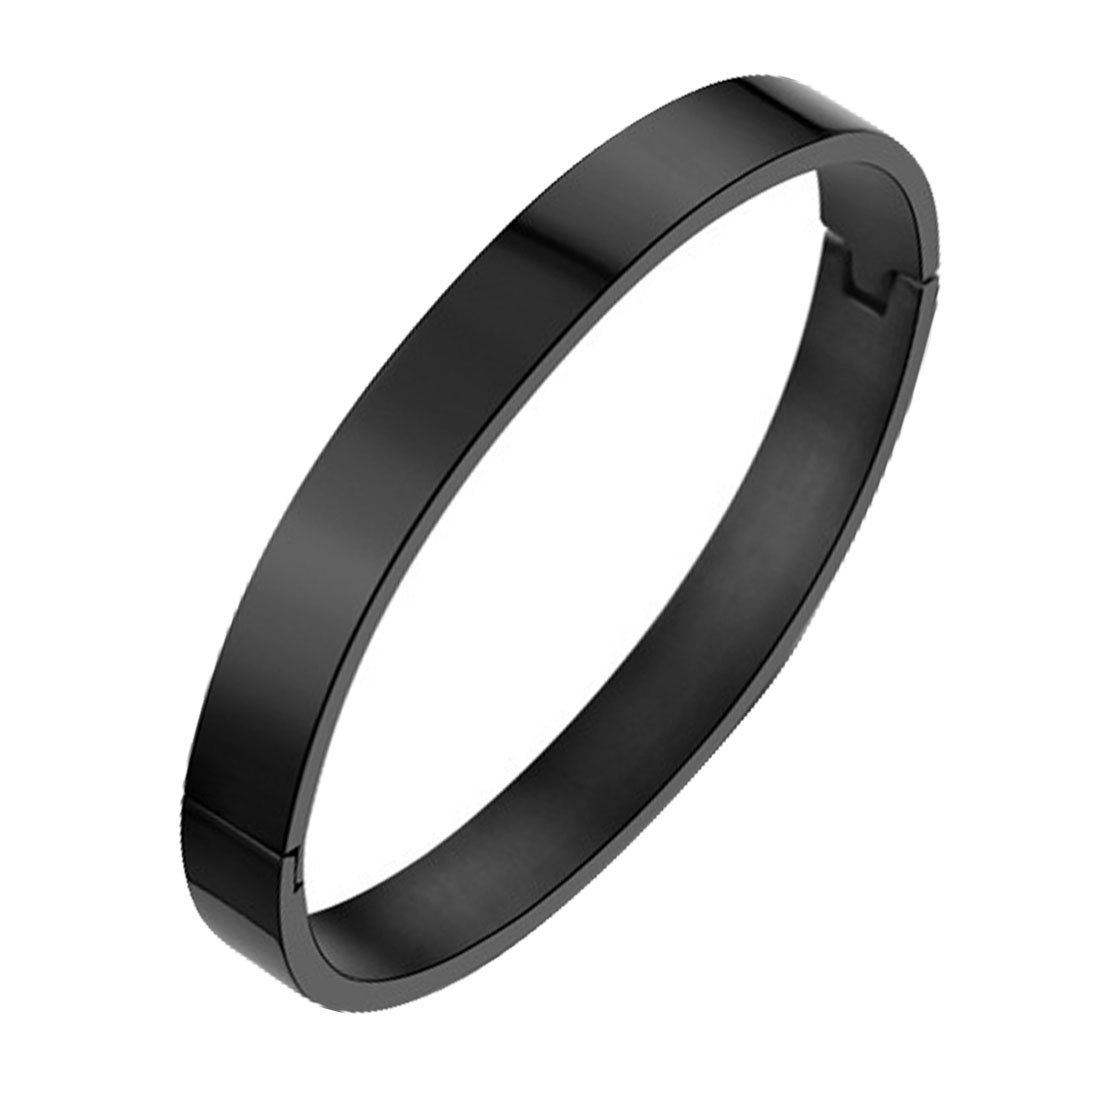 7th Element Polished Stainless Steel Bracelet Classical Band Bangle for Womens (Black,6mm 6.3inch)